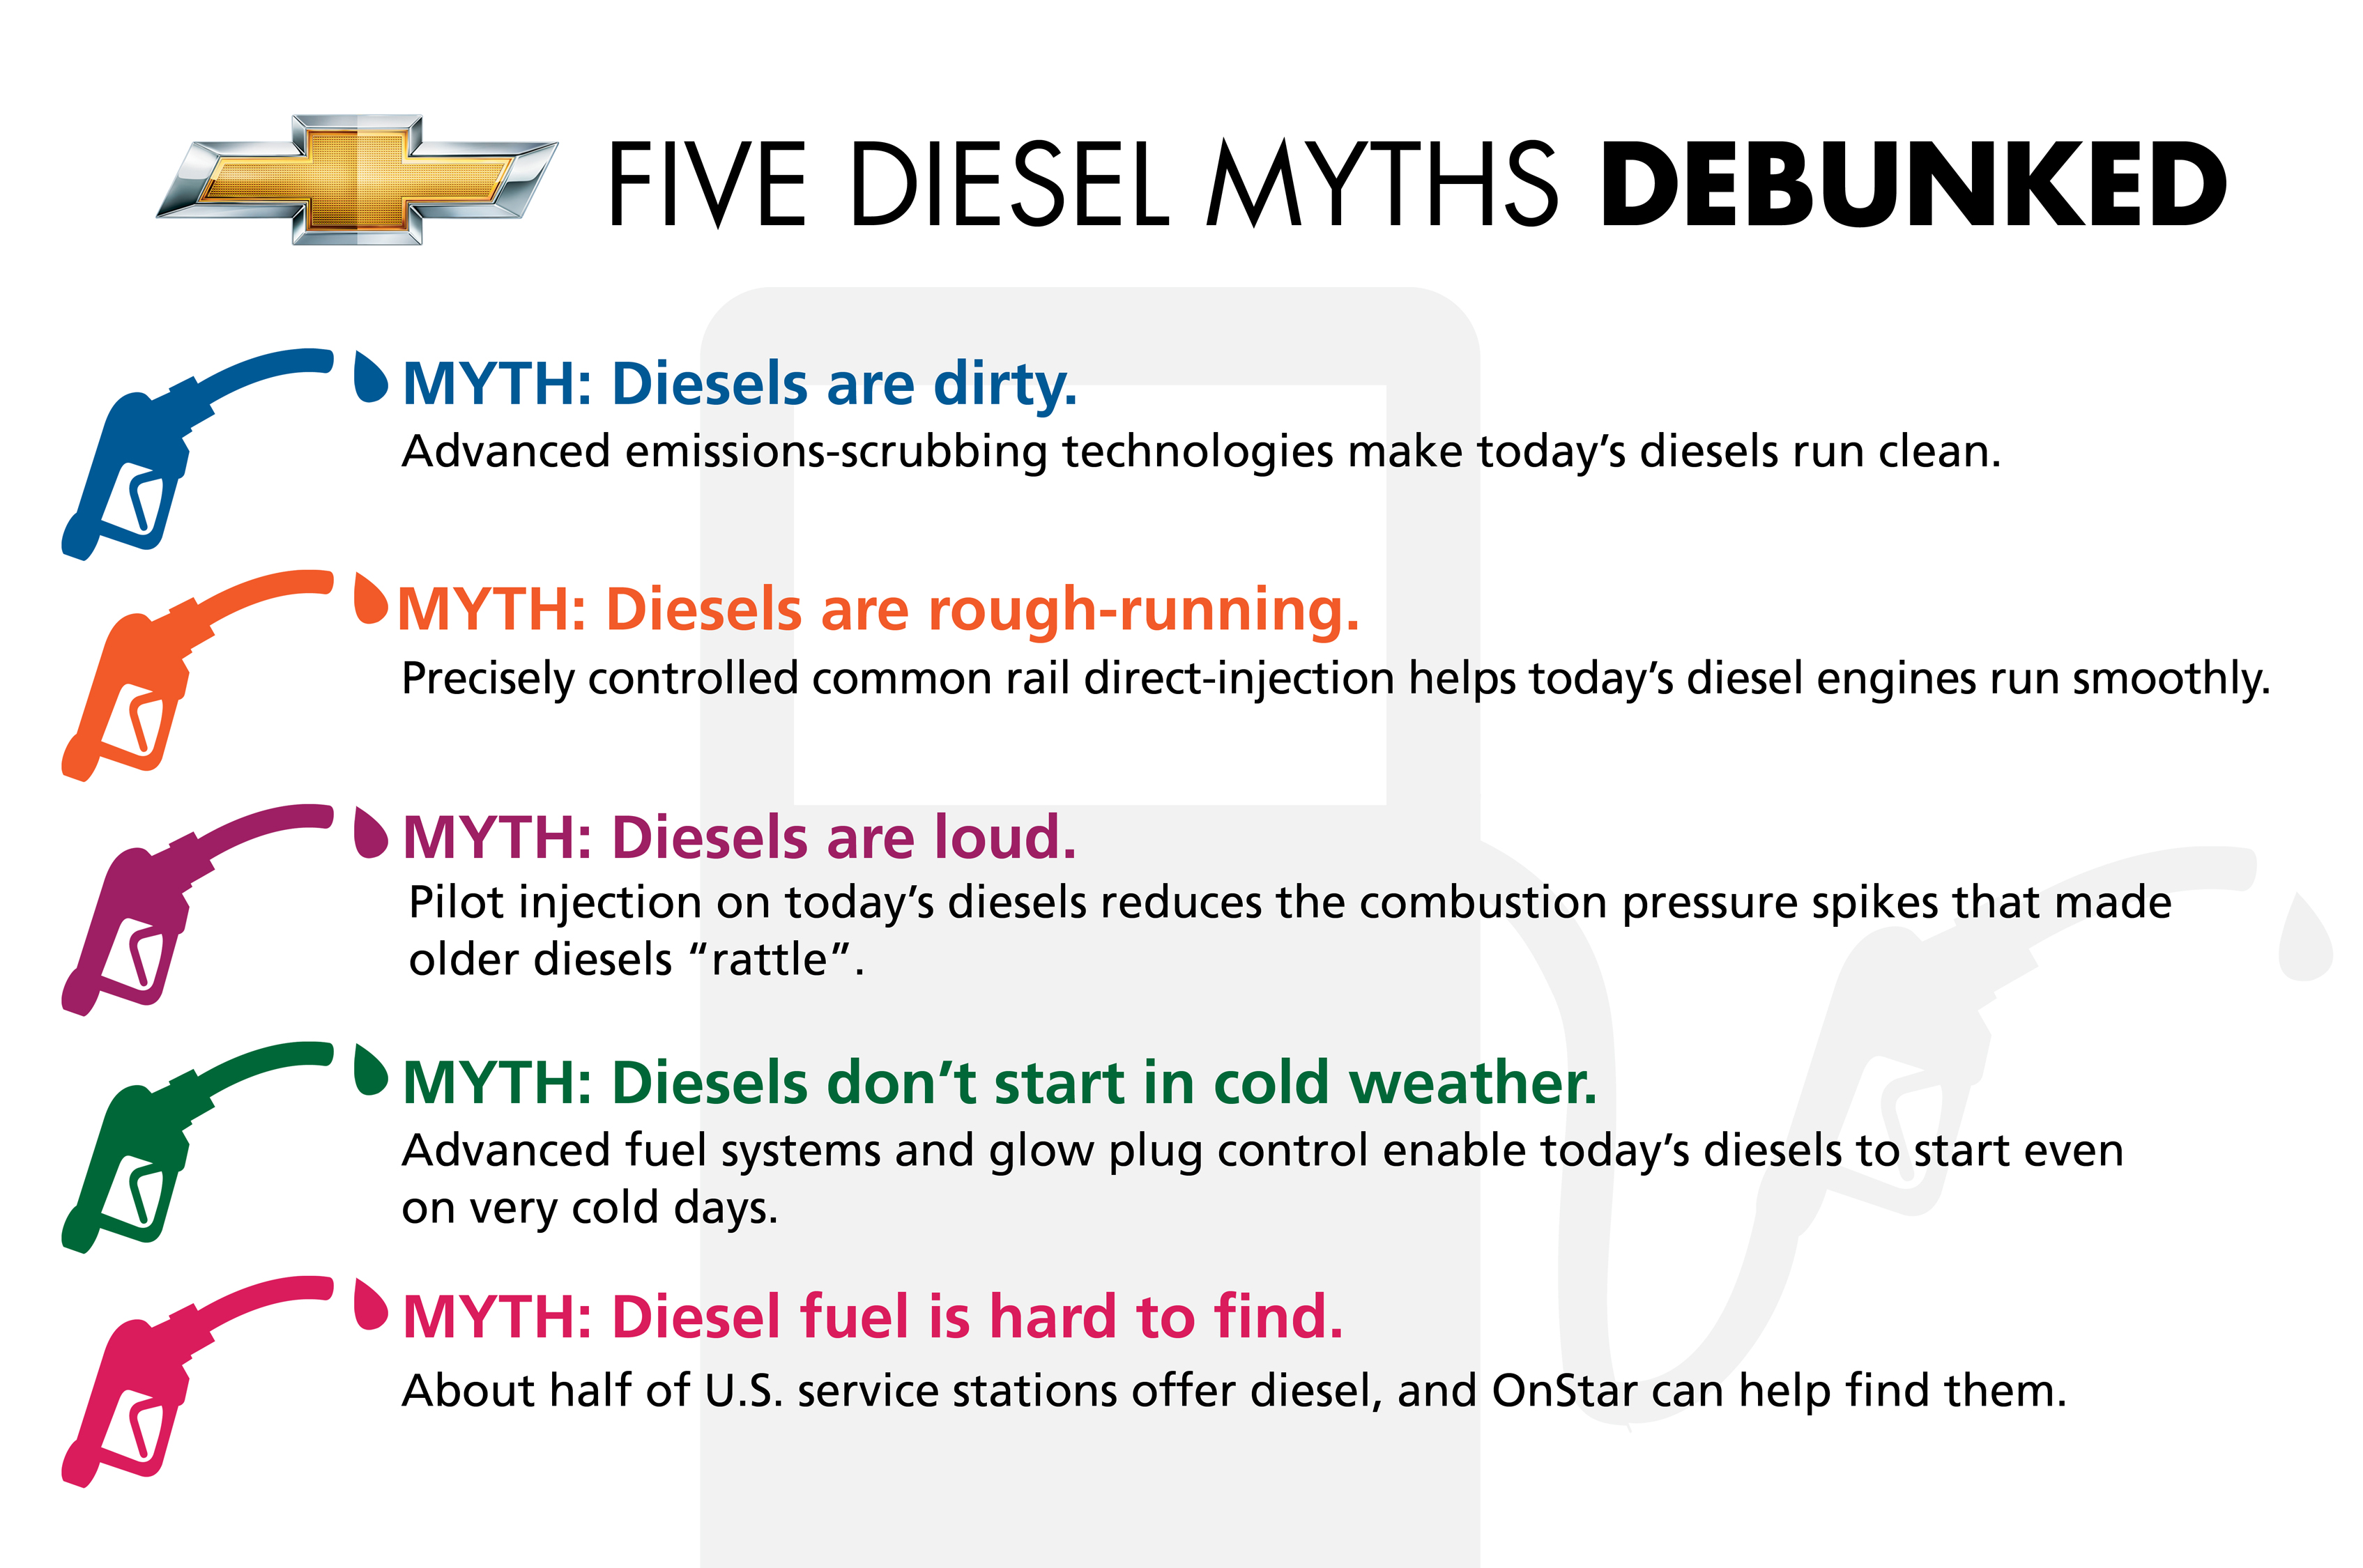 Chevrolet Debunks Diesel Myths For Americans